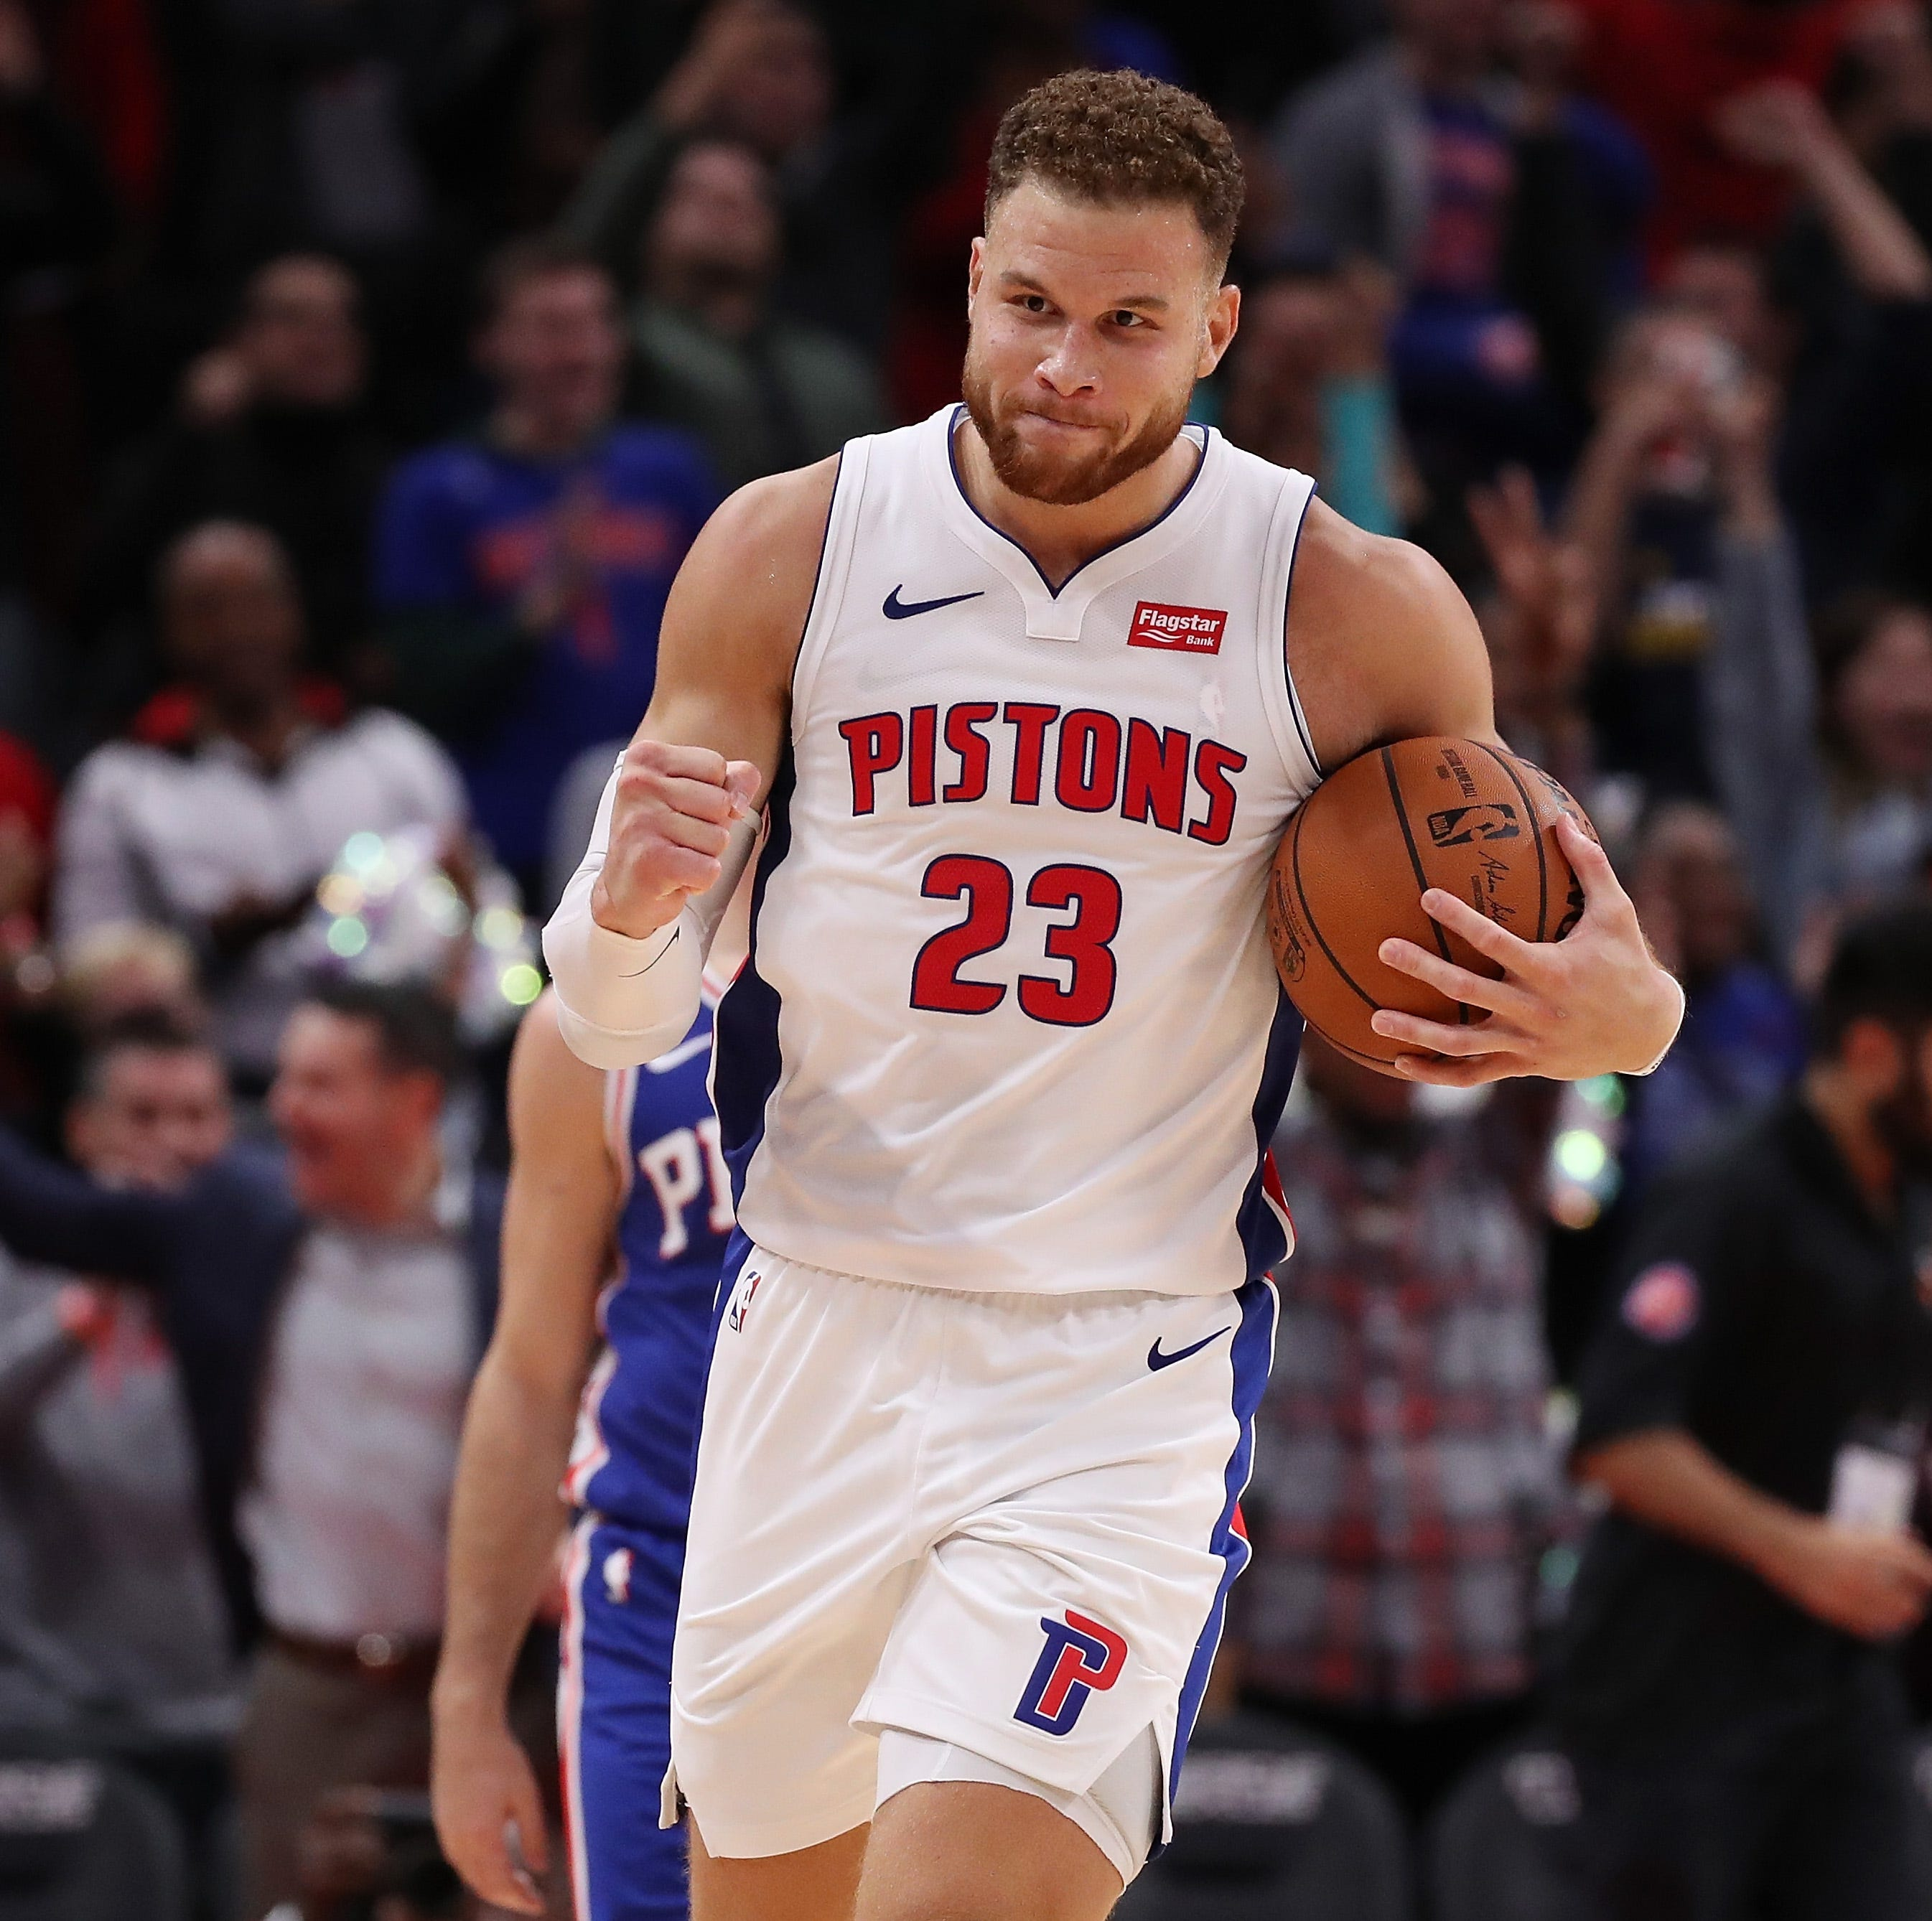 Blake Griffin's career-high 50 points powers Pistons to overtime win over 76ers